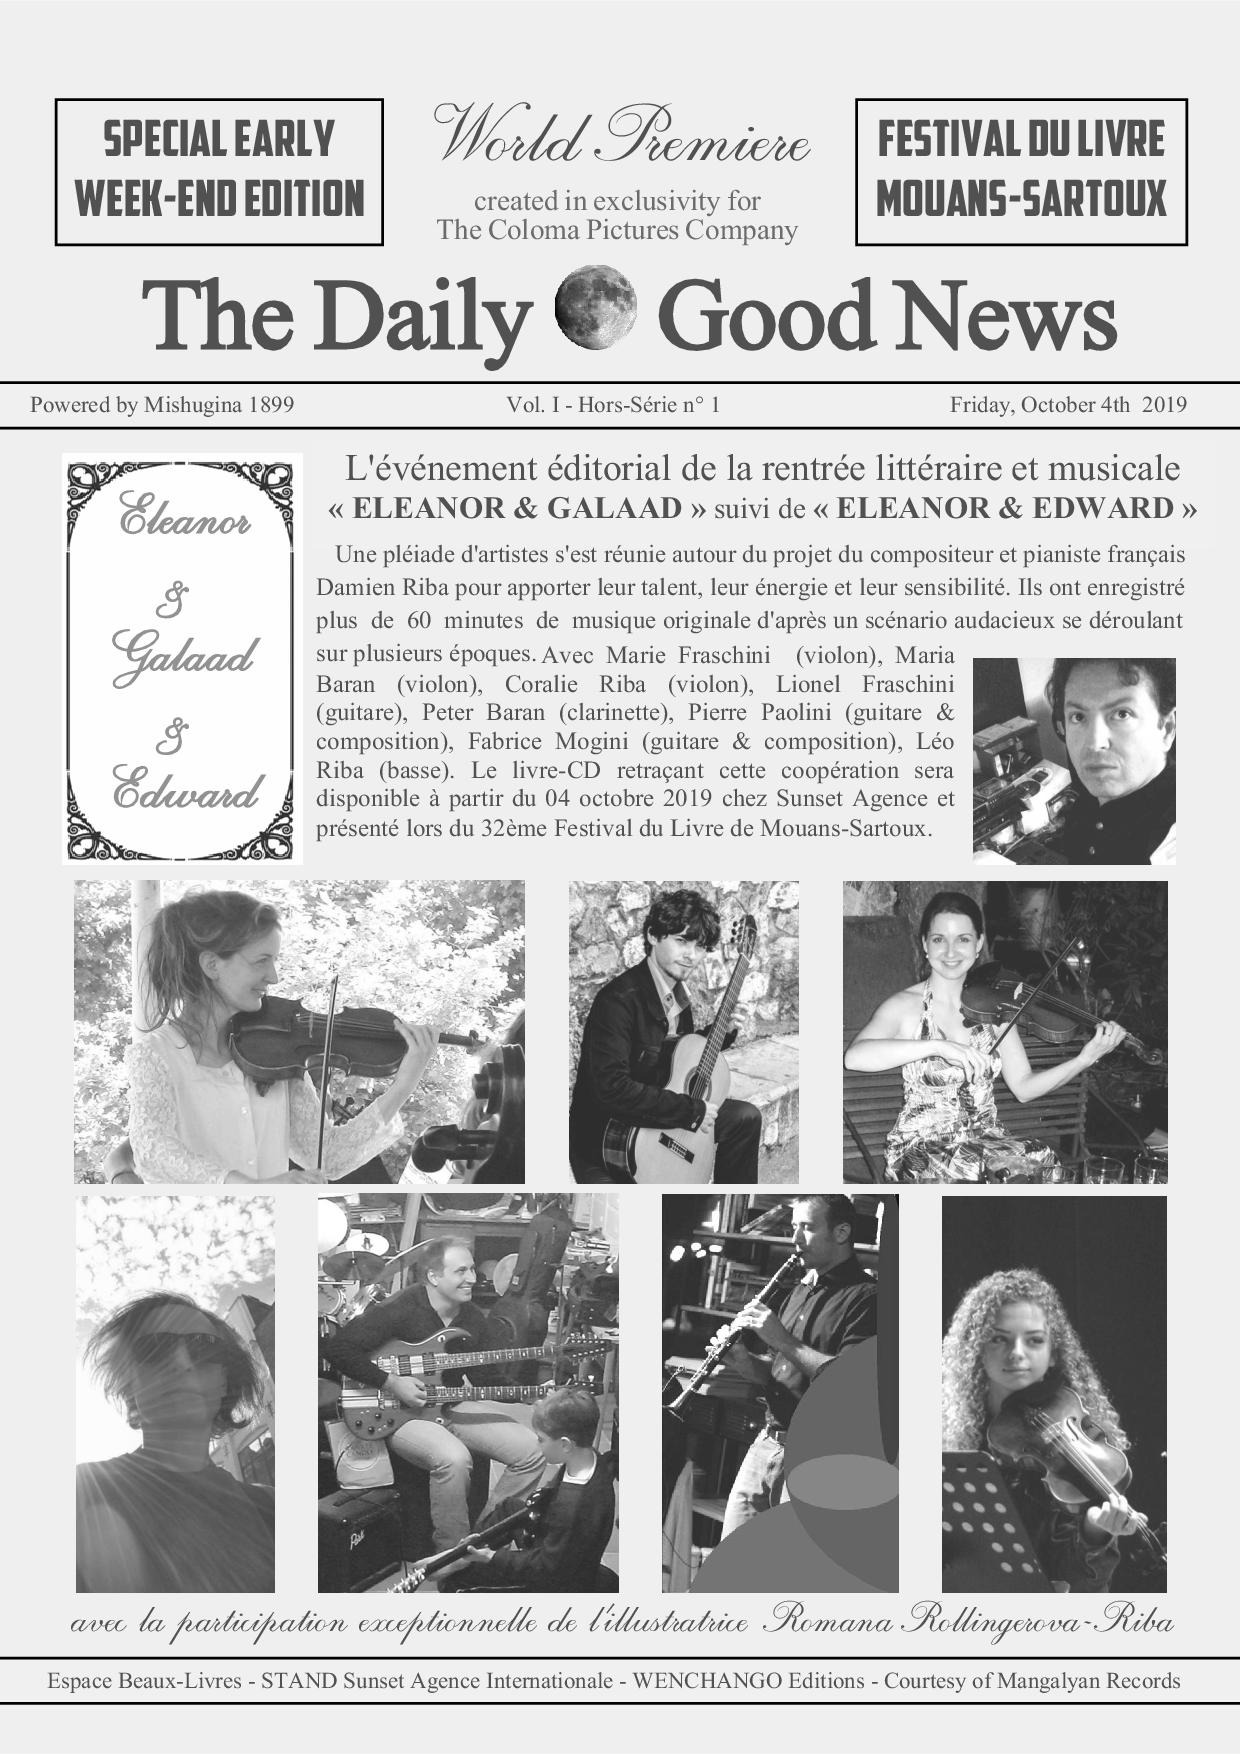 THE DAILY GOOD NEWS